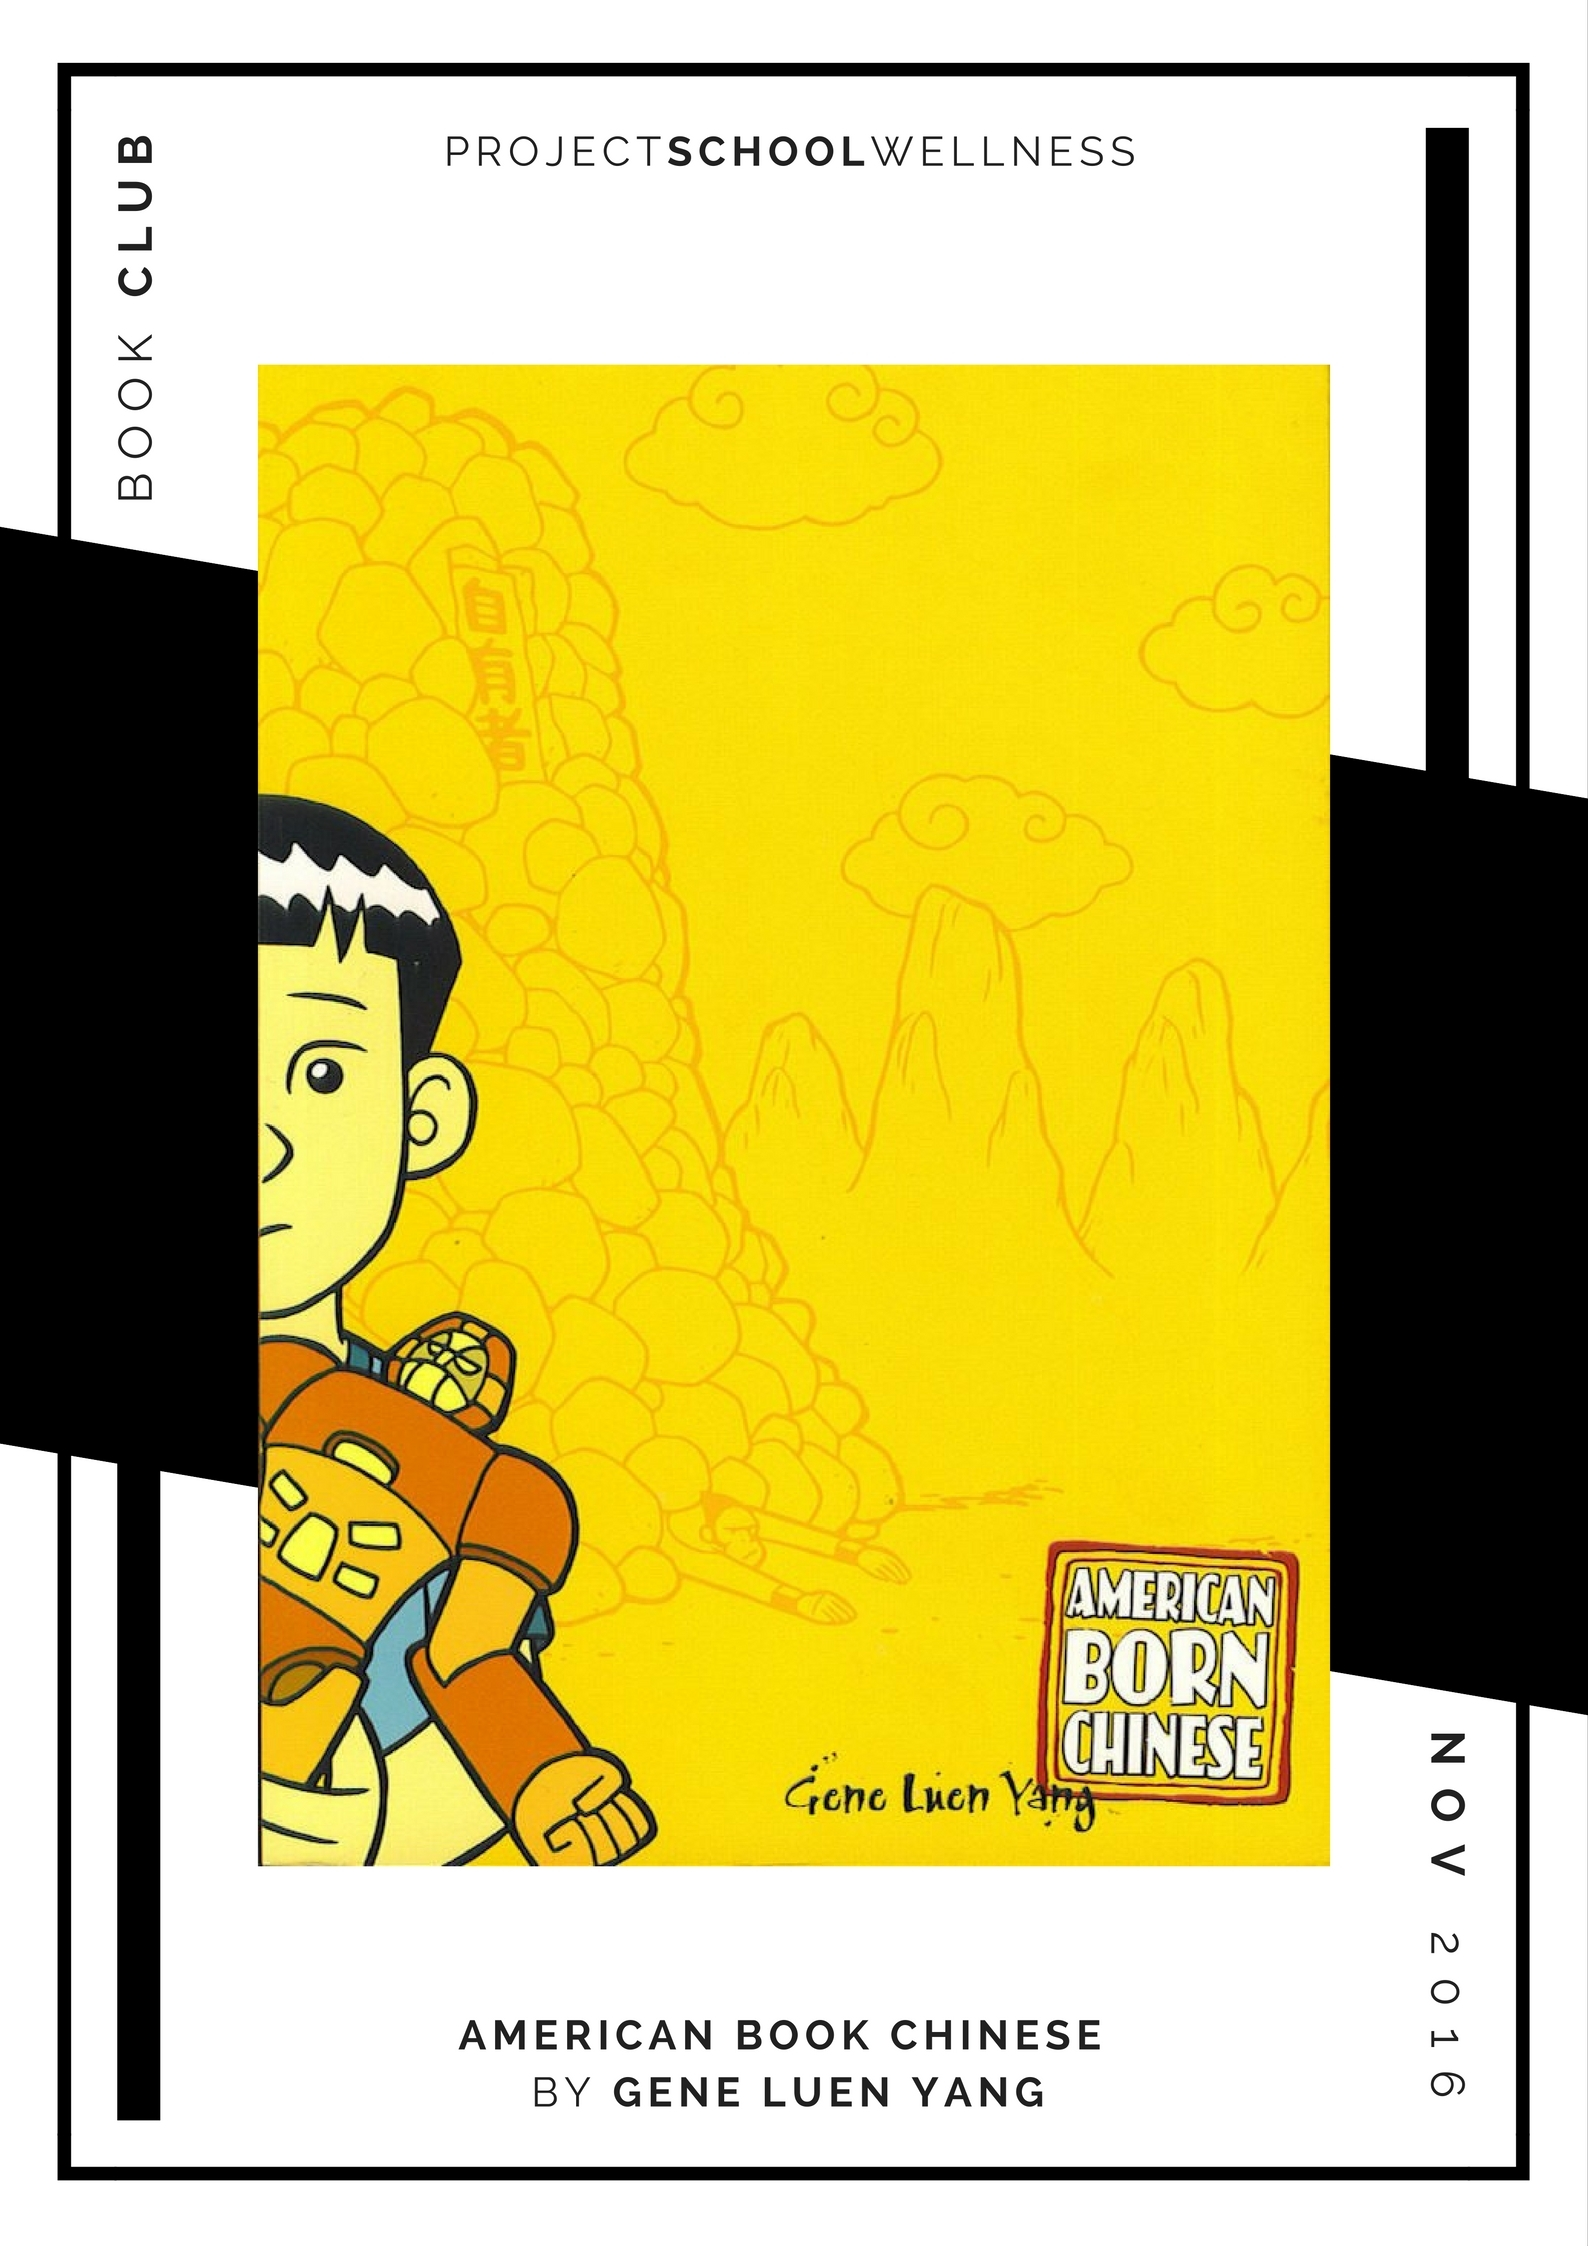 Gene Luen Yang - American Born Chinese - Project School Wellness' Teacher Book Club, must read books for every teacher!